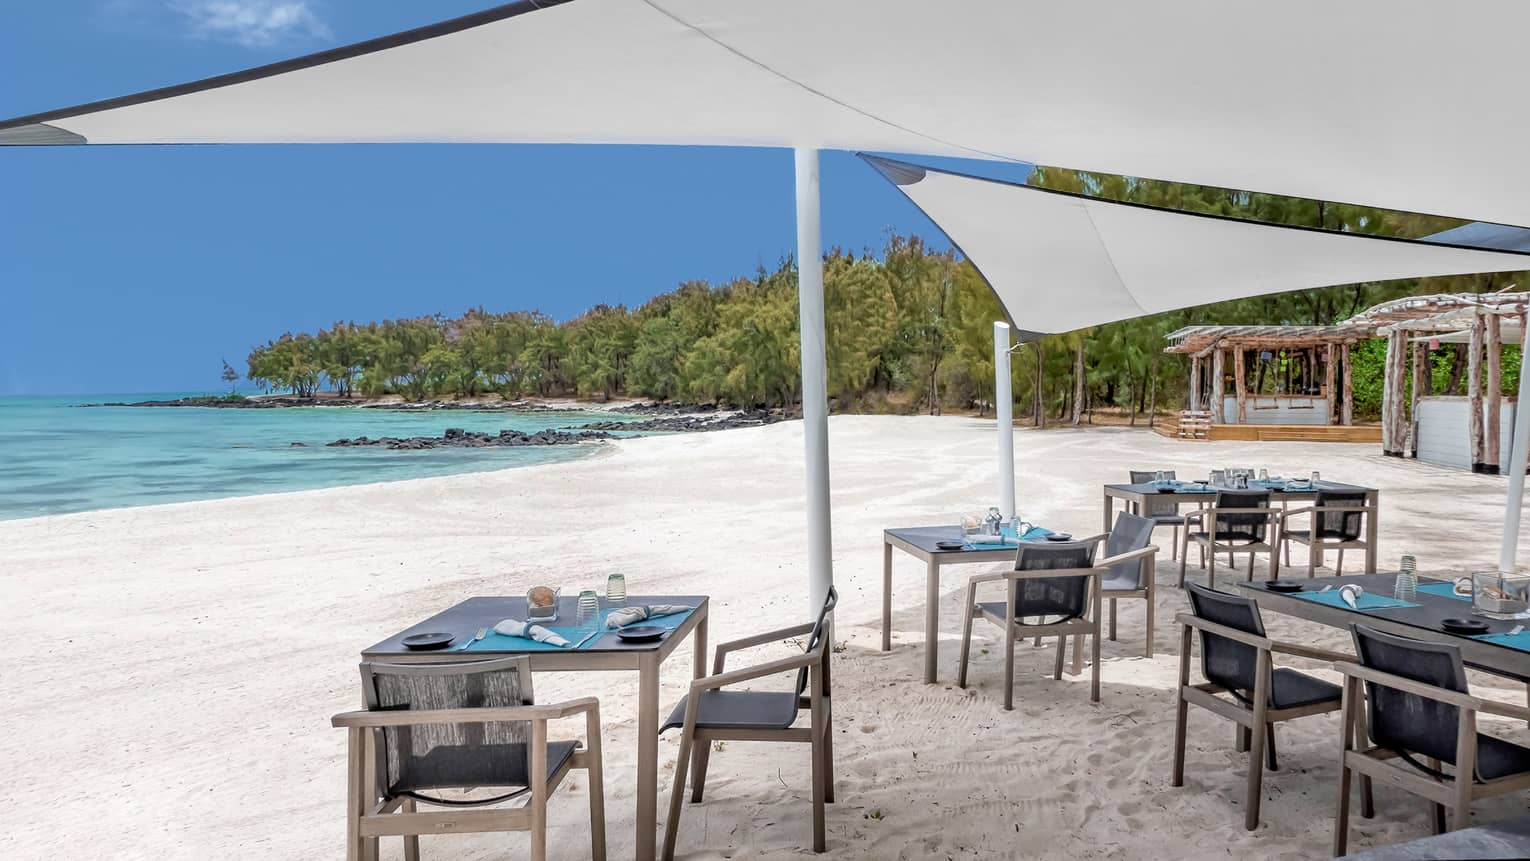 Small dining tables under white umbrella canopies on white sand beach near ocean